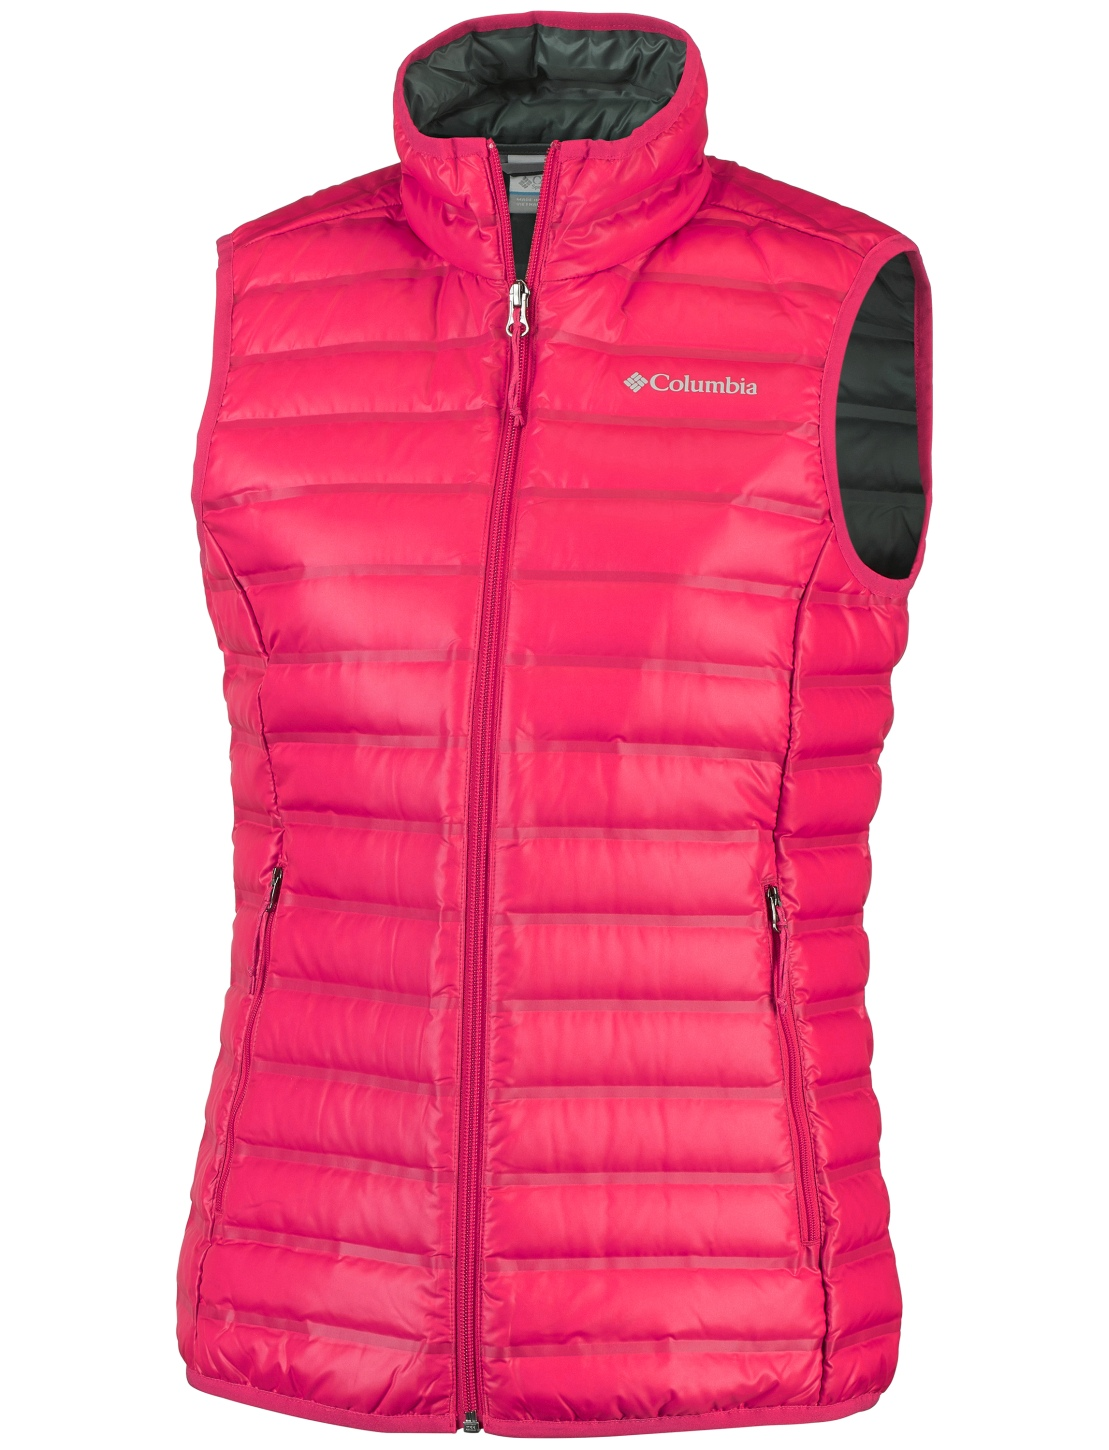 Columbia Women's Flash Forward Down Vest Red Camellia-30